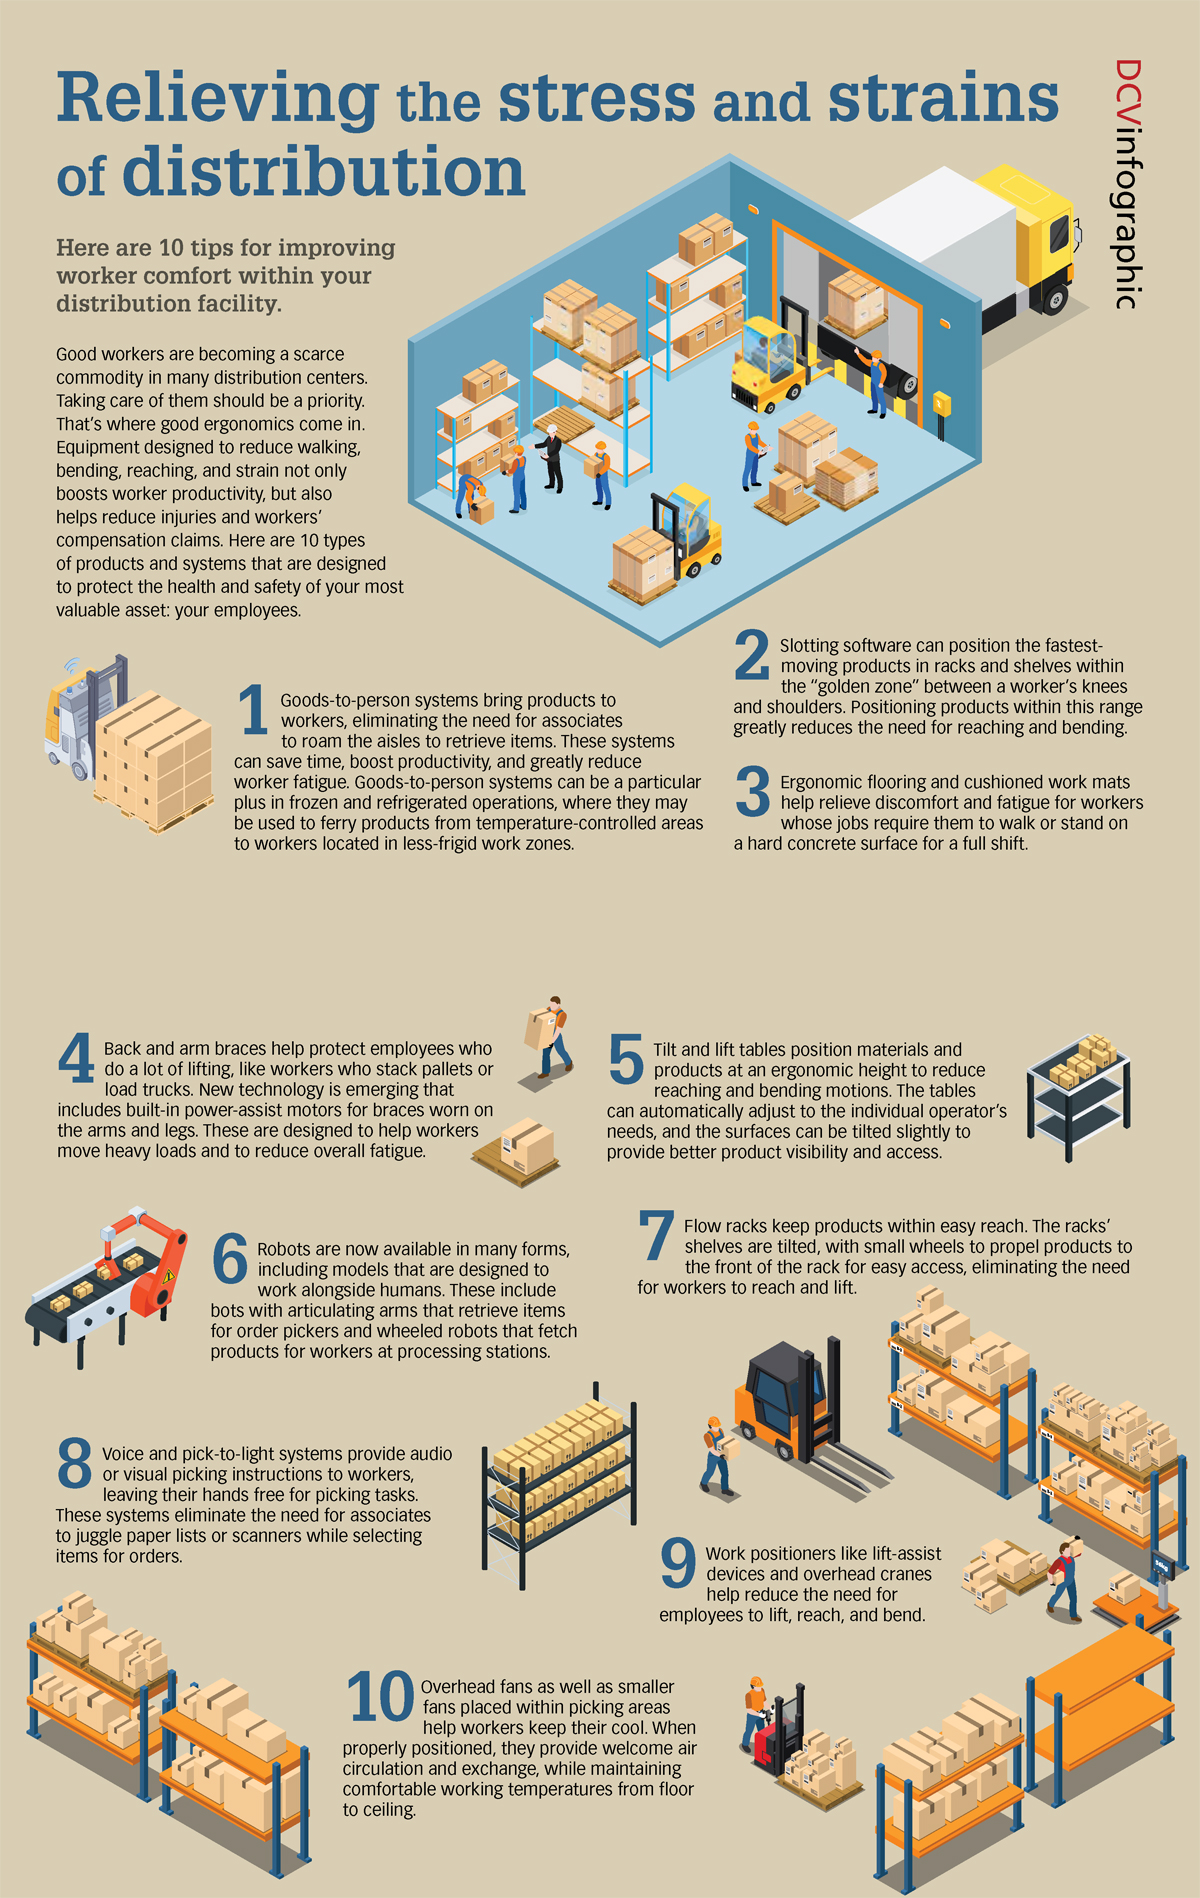 Here are 10 tips for improving worker comfort within your distribution facility.